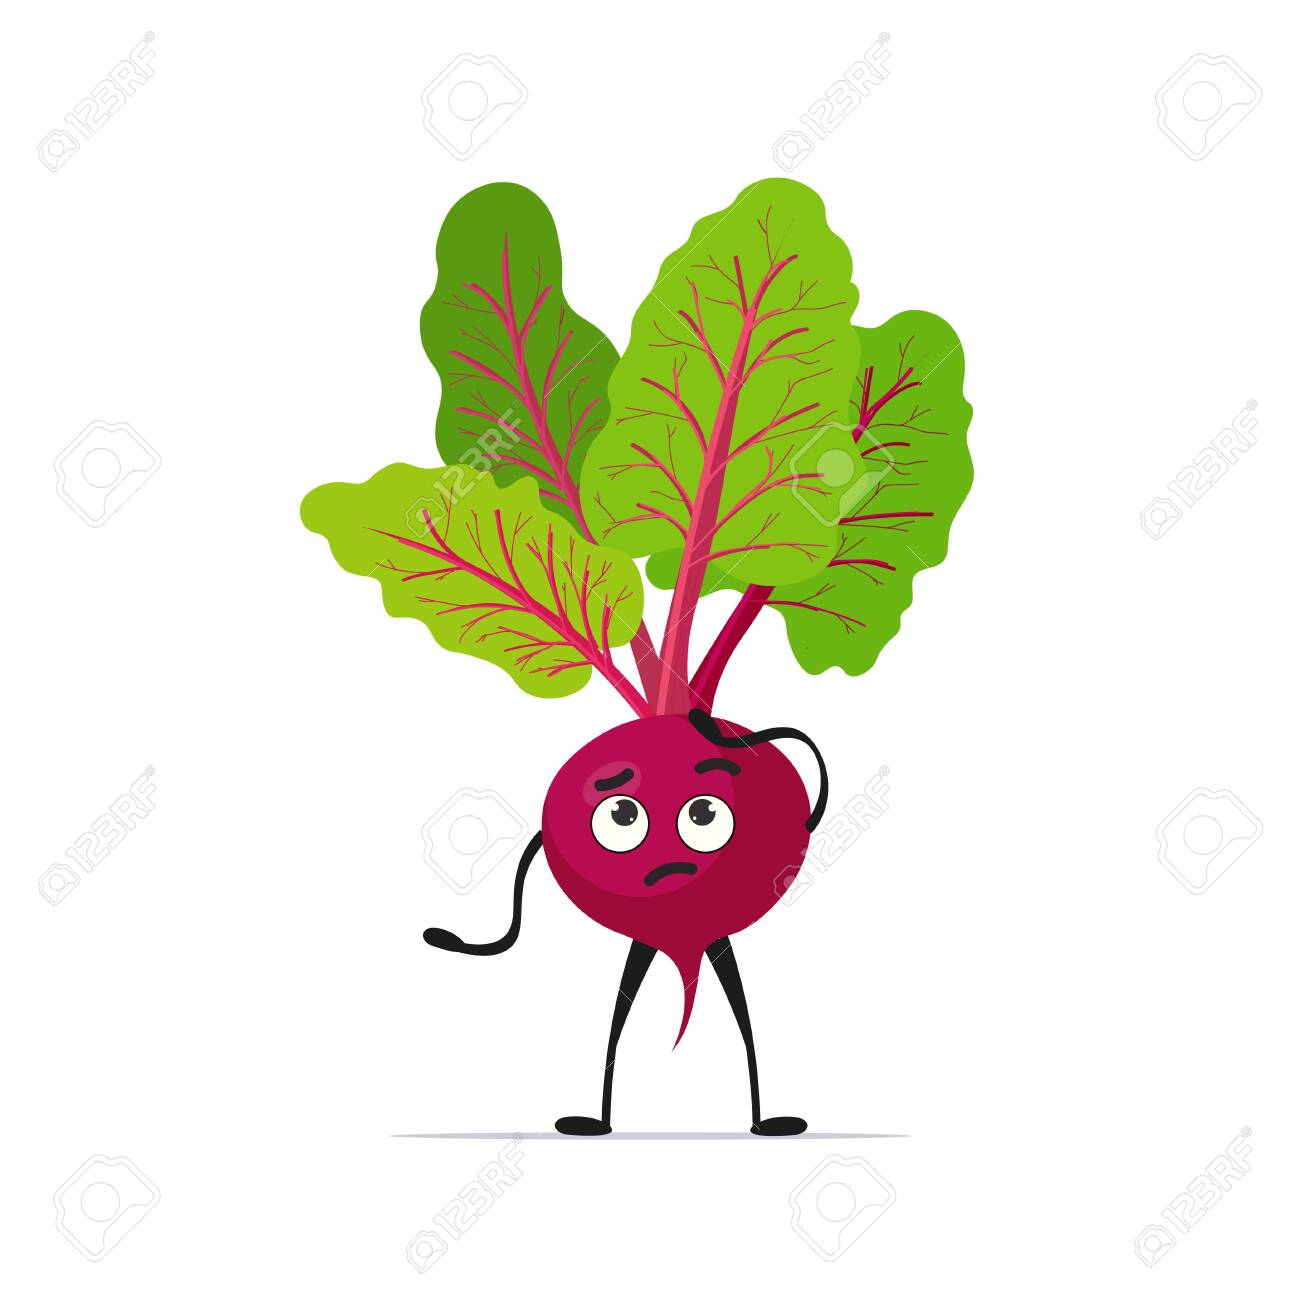 cute beet character cartoon mascot vegetable healthy food concept isolated vector illustration - 141697873